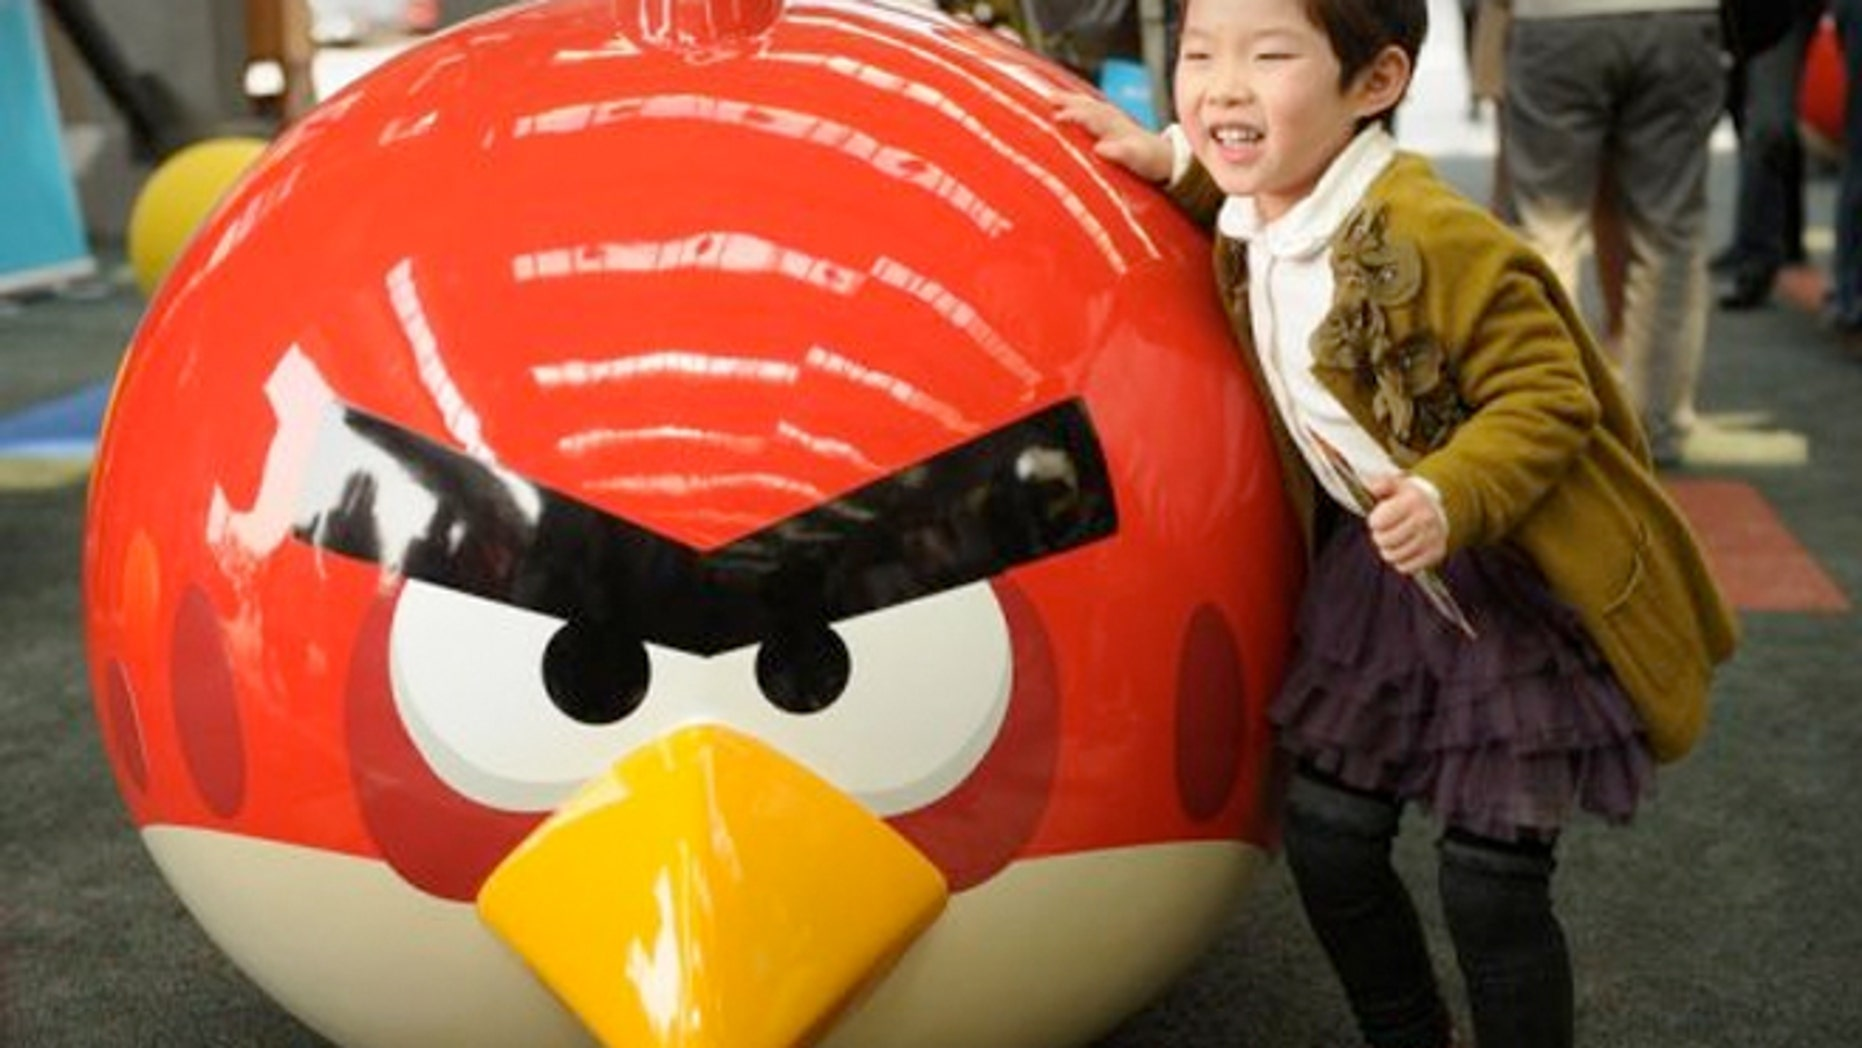 China, which has the world's second-highest number of downloads for Angry Birds at 190 million, will get a new Angry Birds theme park.